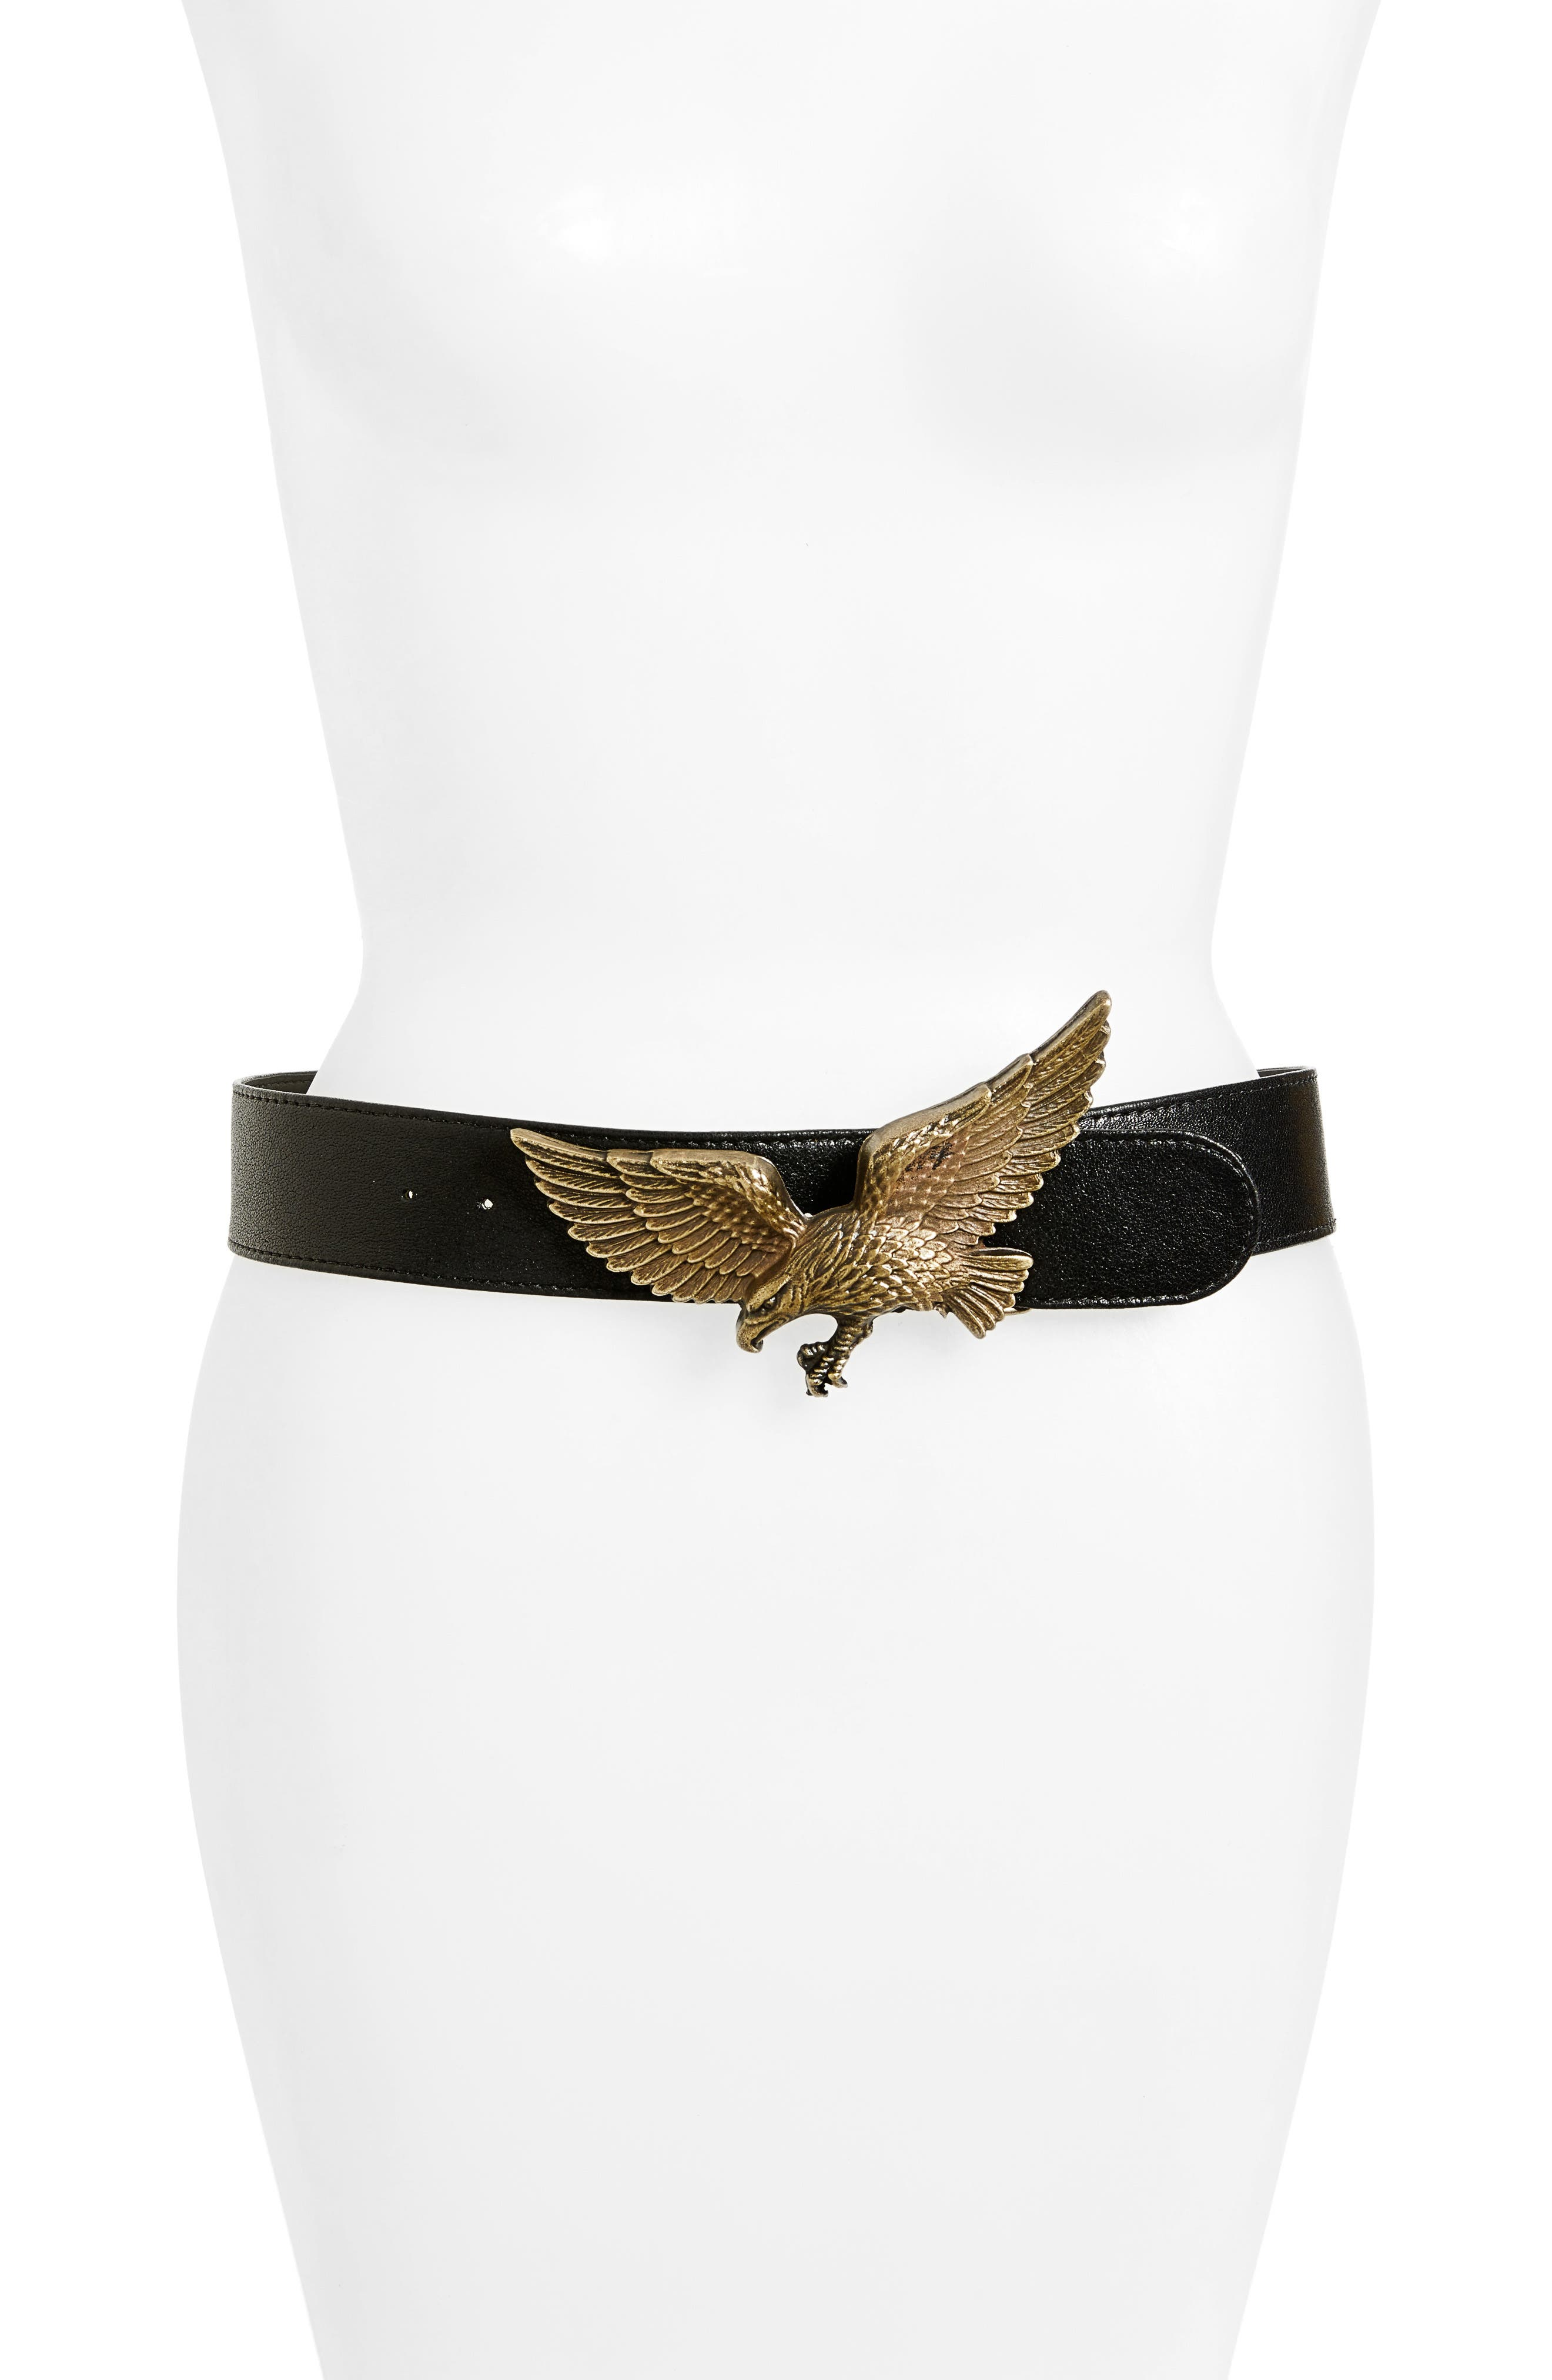 A magnificent eagle in flight centers a supple leather belt that\\\'s sure to add a fierce touch to your everyday ensemble. Style Name: Raina Eagle Leather Belt. Style Number: 5382346. Available in stores.